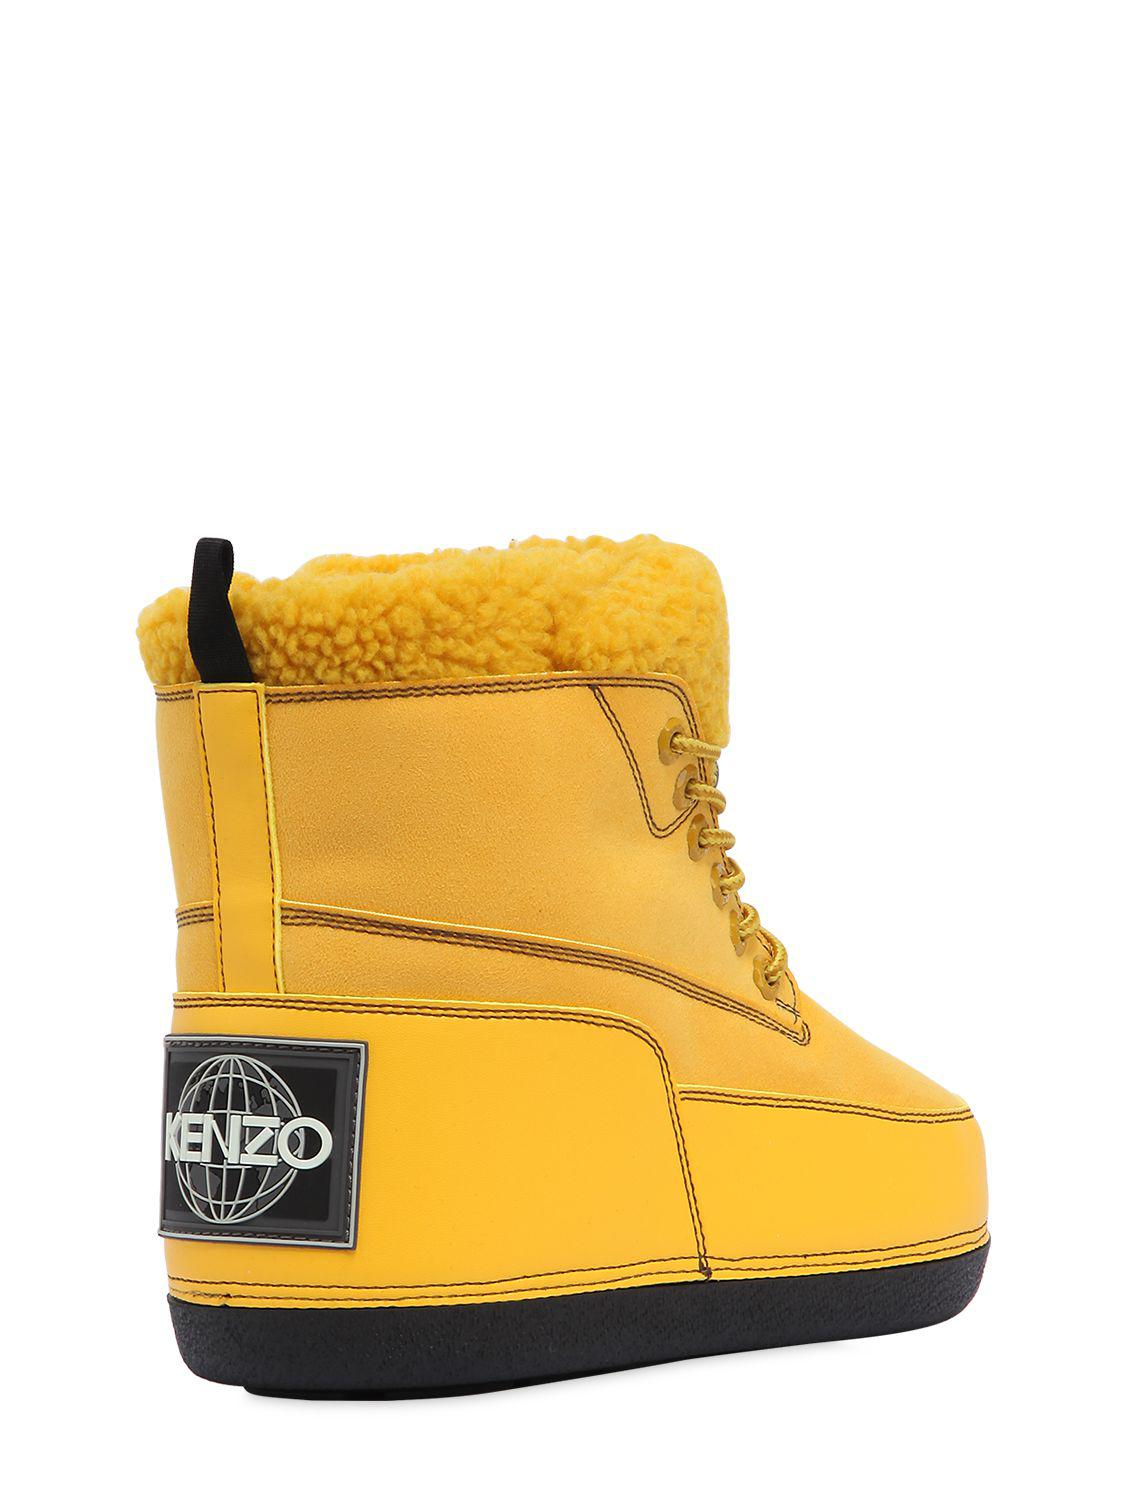 KENZO Leather Logo Snow Boots in Yellow